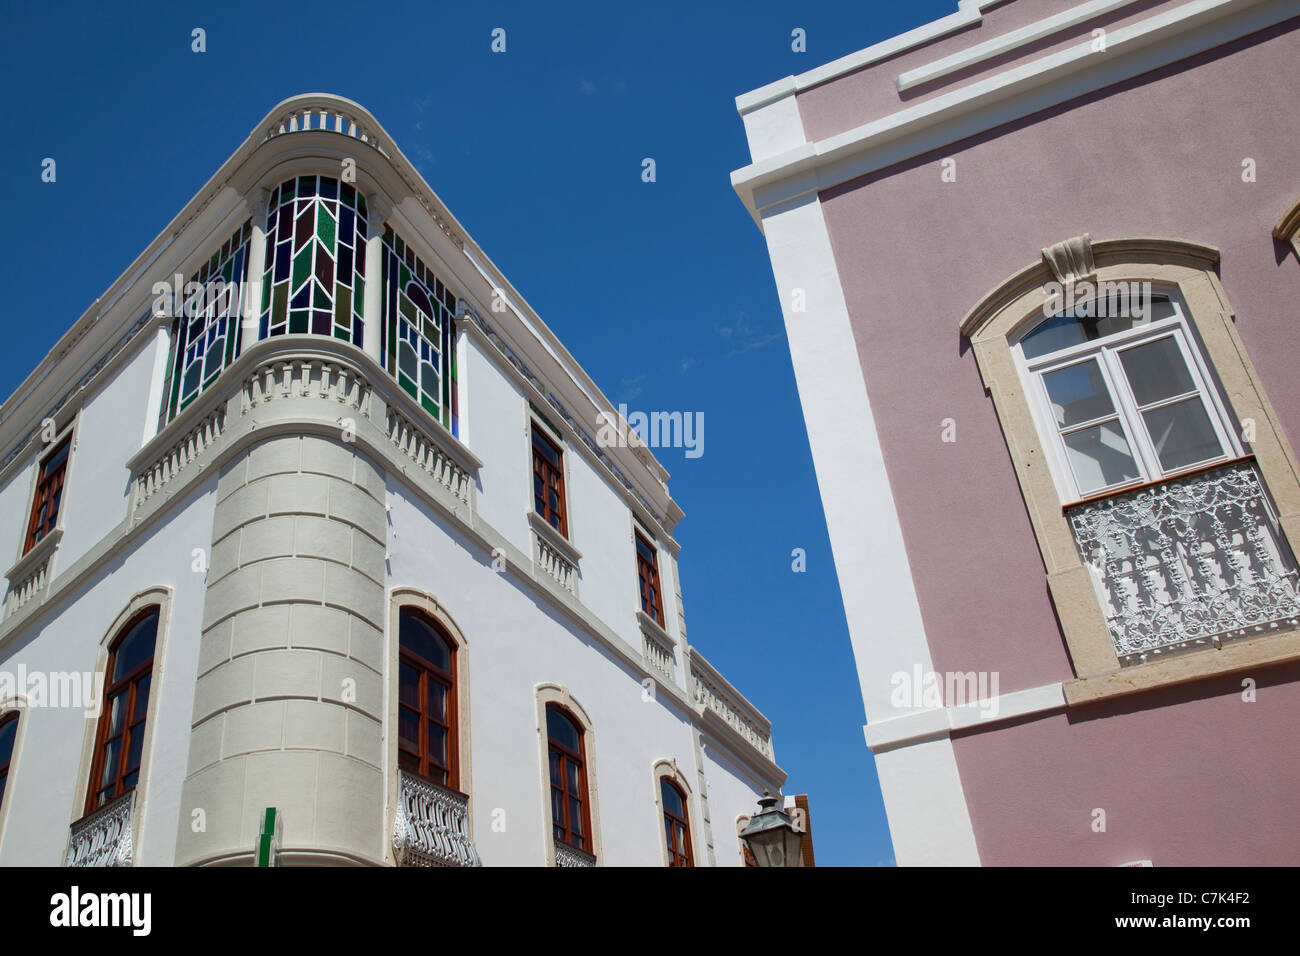 Portugal, Algarve, Silves, Architecture Stock Photo